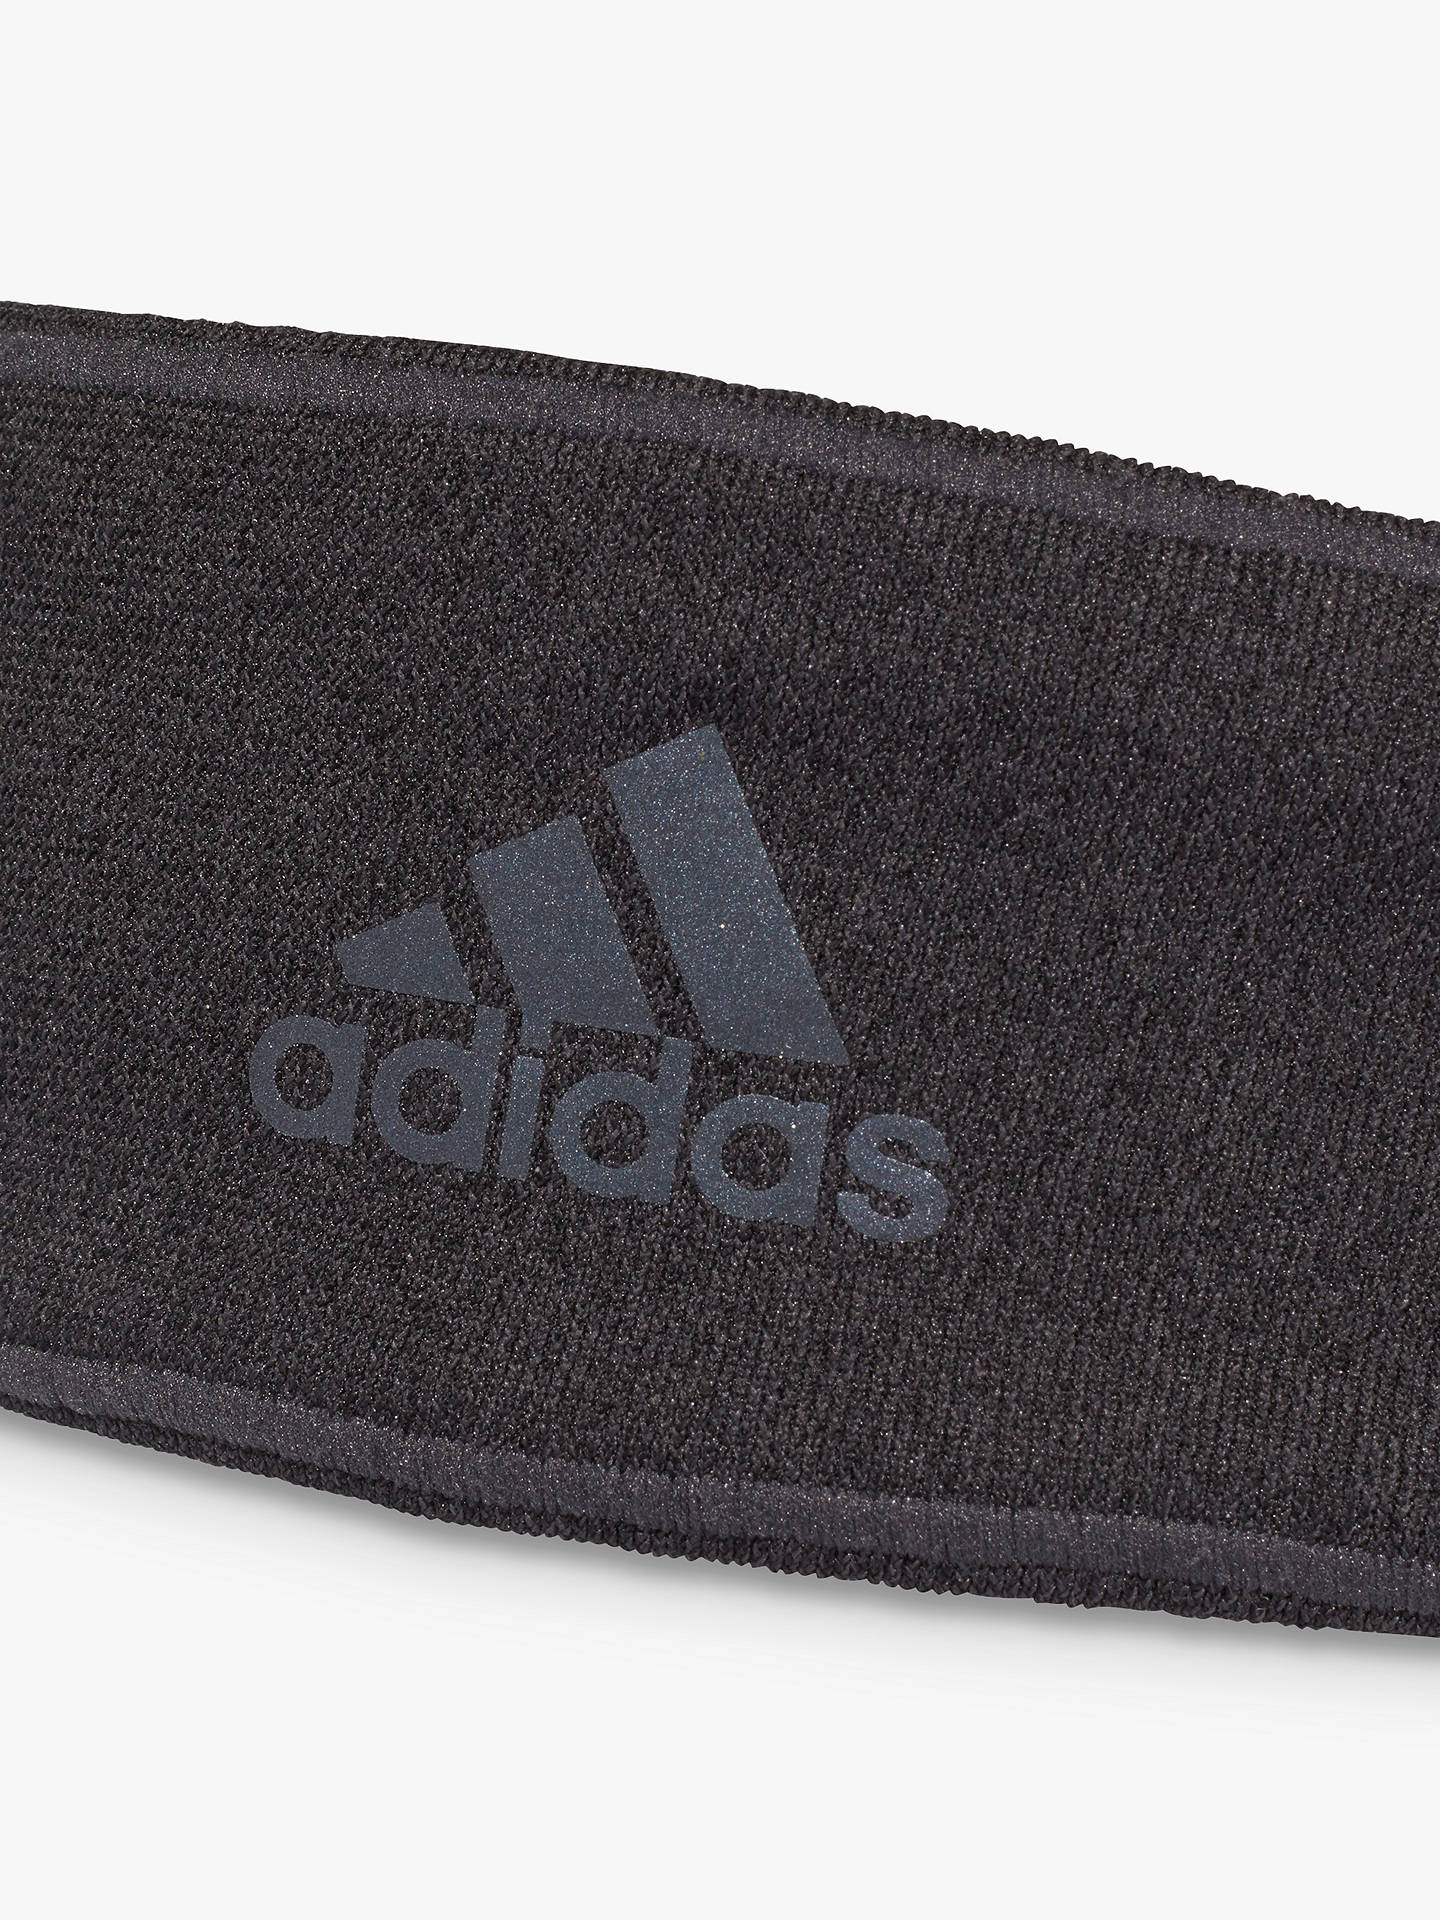 Buyadidas Climaheat Running Headband, Carbon Online at johnlewis.com